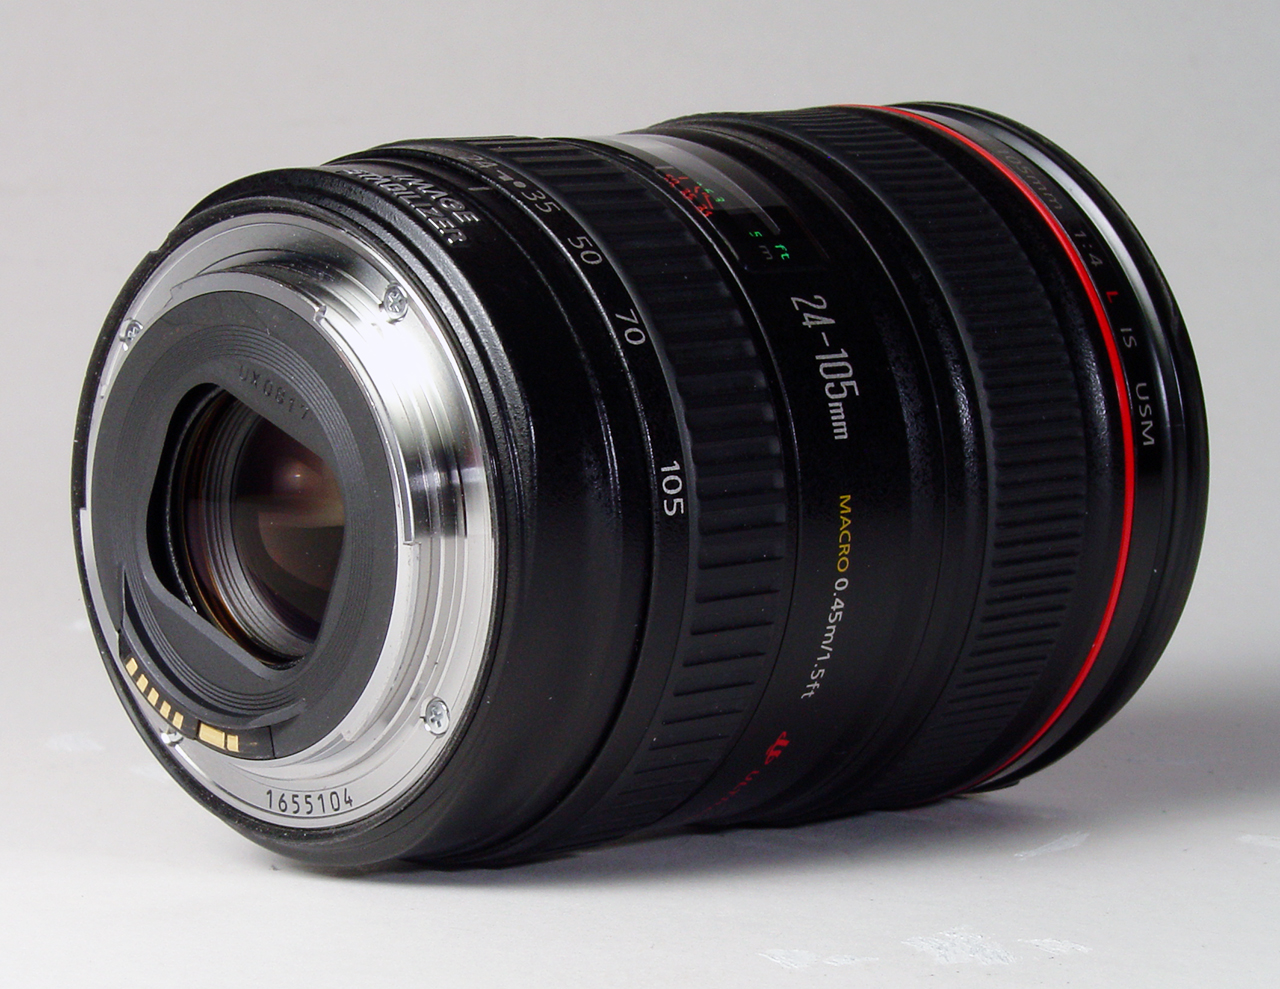 Completing the f/4 zoom lineup, along with the ef 17-40mm f/4l usm (2003) and the ef 70-200mm f/4l usm (1999), the